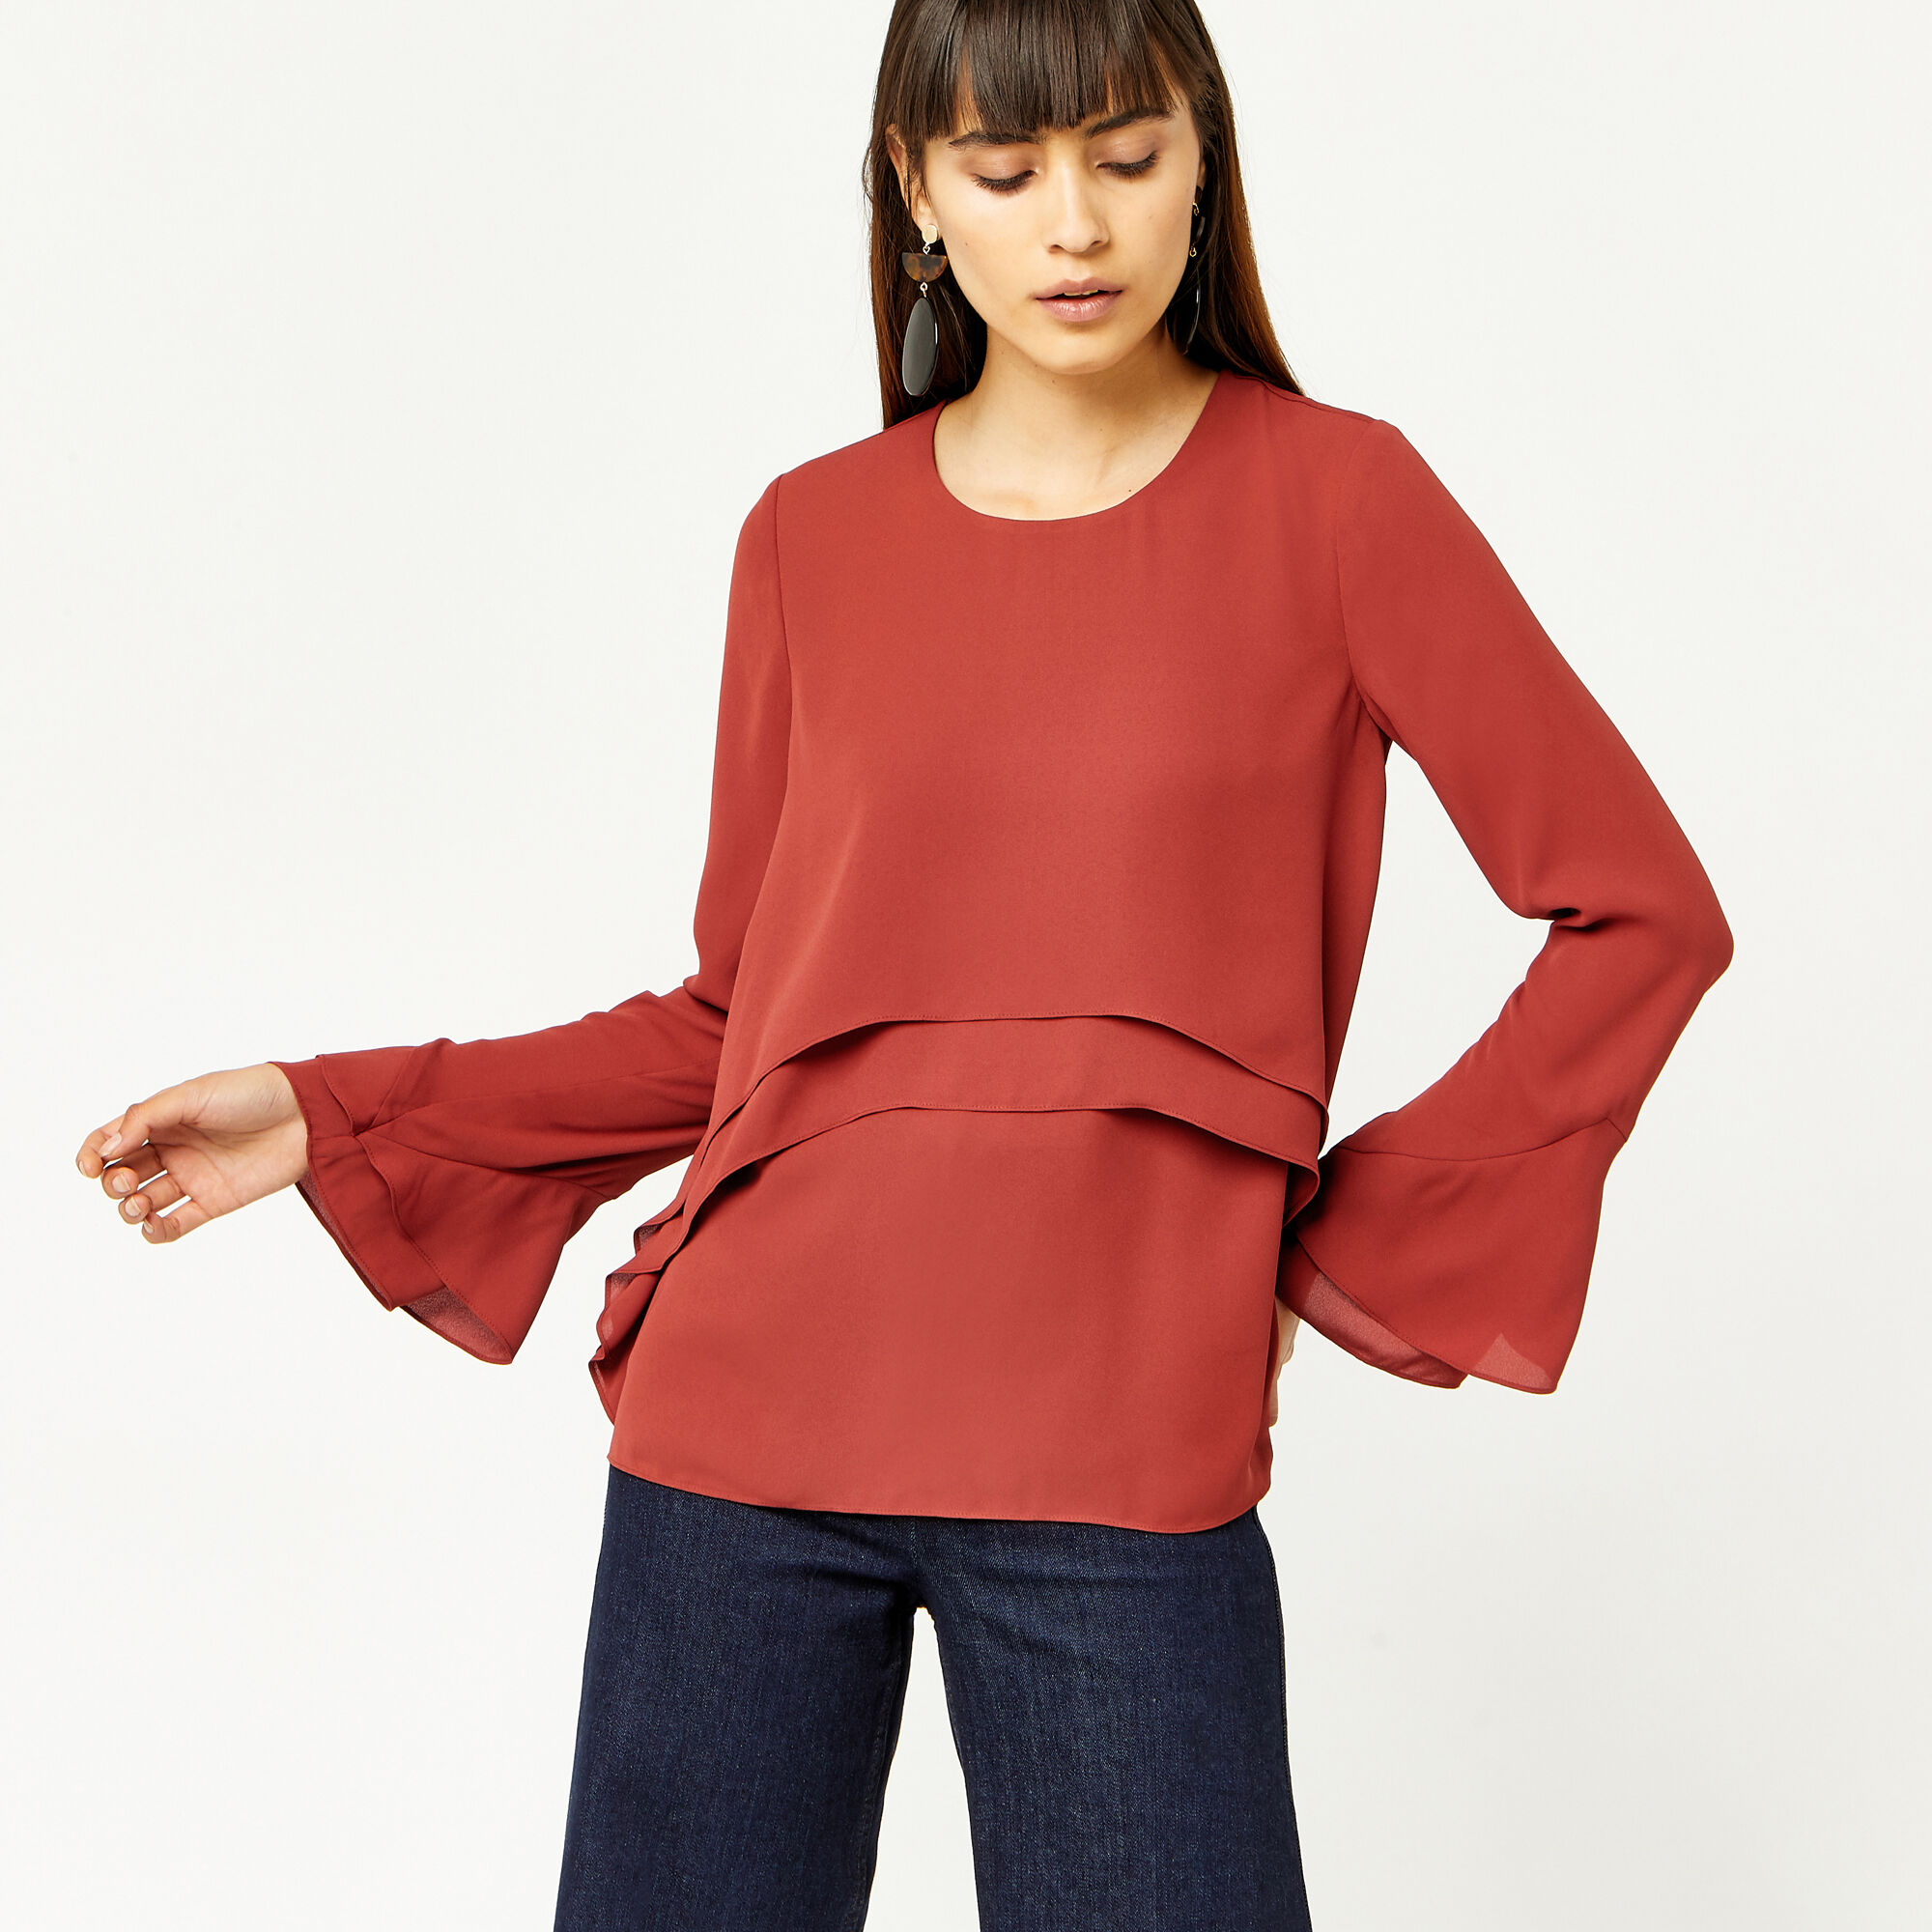 Warehouse, DOUBLE LAYER TOP Orange 1